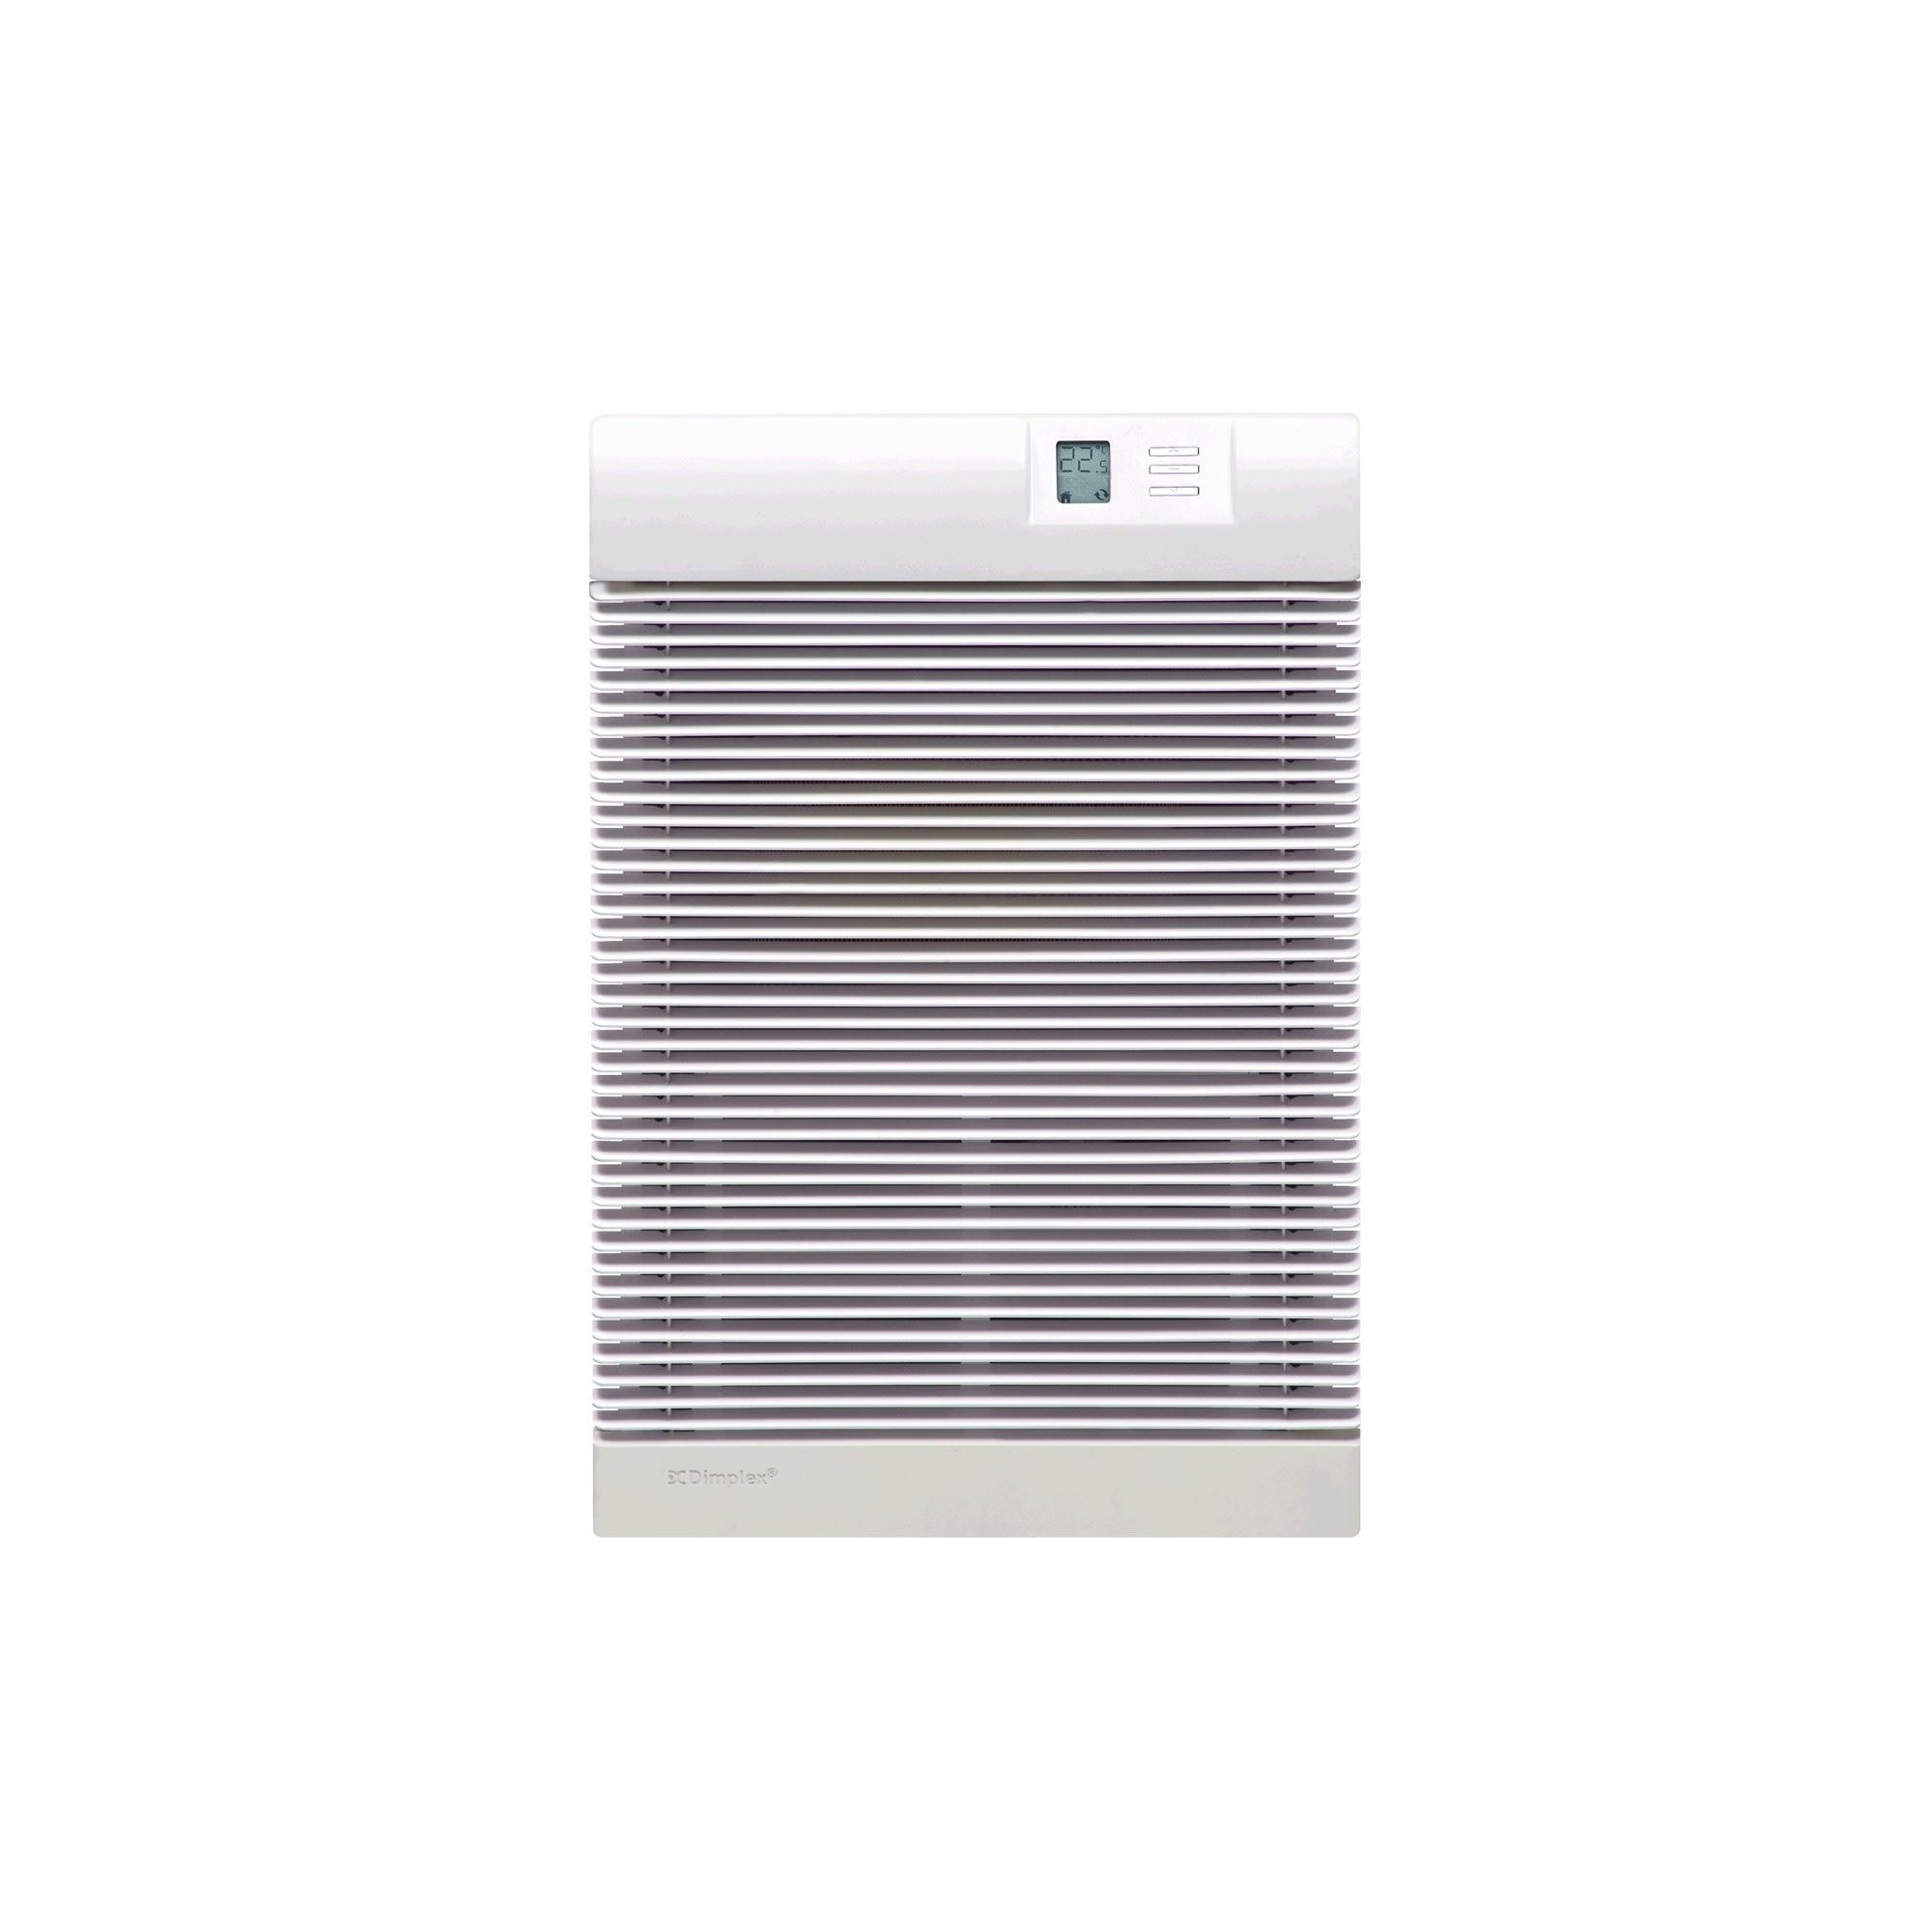 Dimplex Pch2000tc 6 824 Btu 2000 Watt 208 240 Volt Wall Mount Electric Heater With Built In Electronic Thermostat N With Images Dimplex Electric Heater Power Efficiency